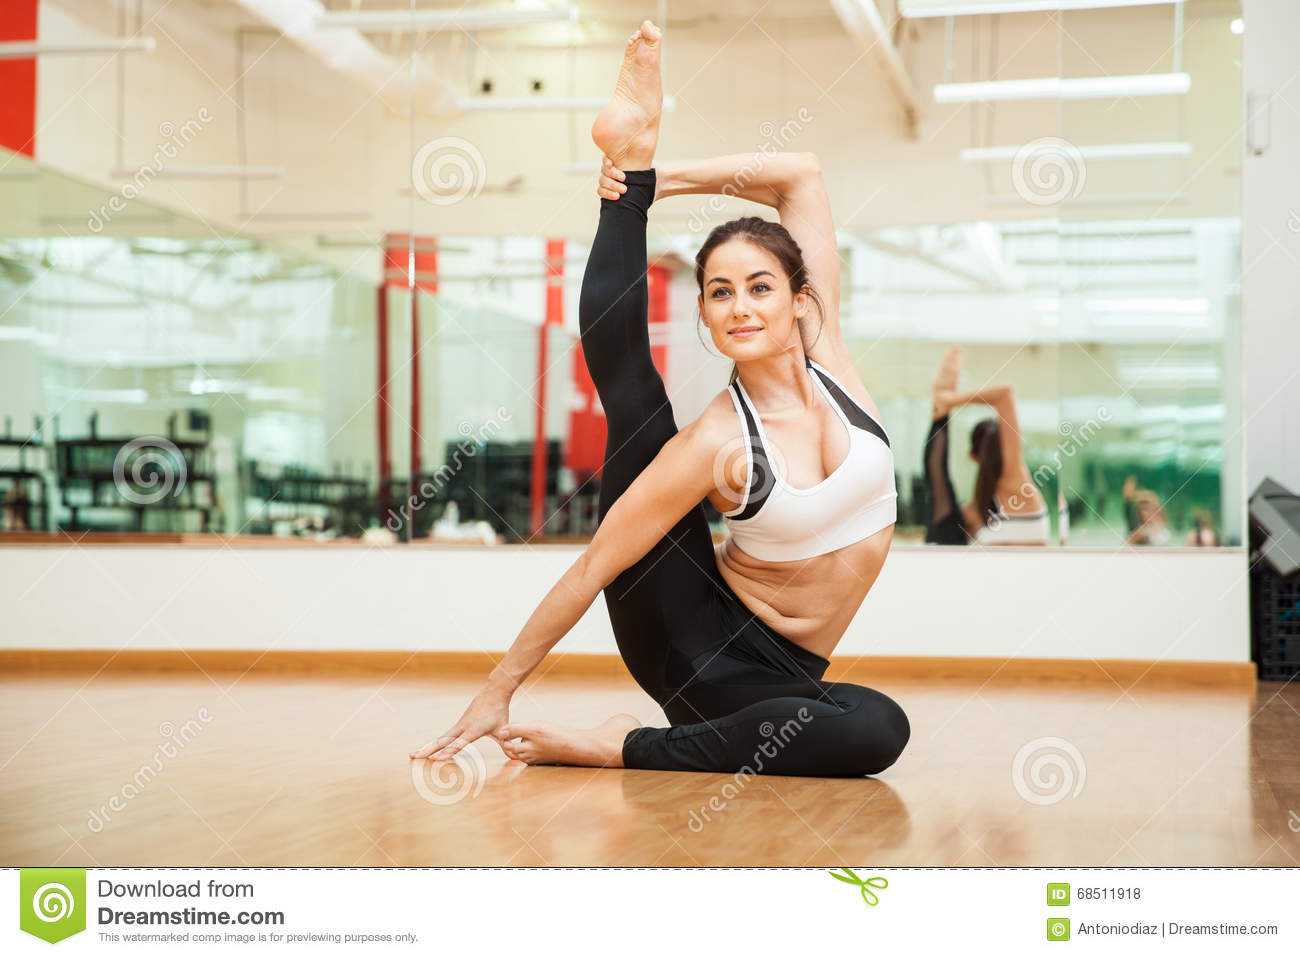 from Madden girls with flexible leg